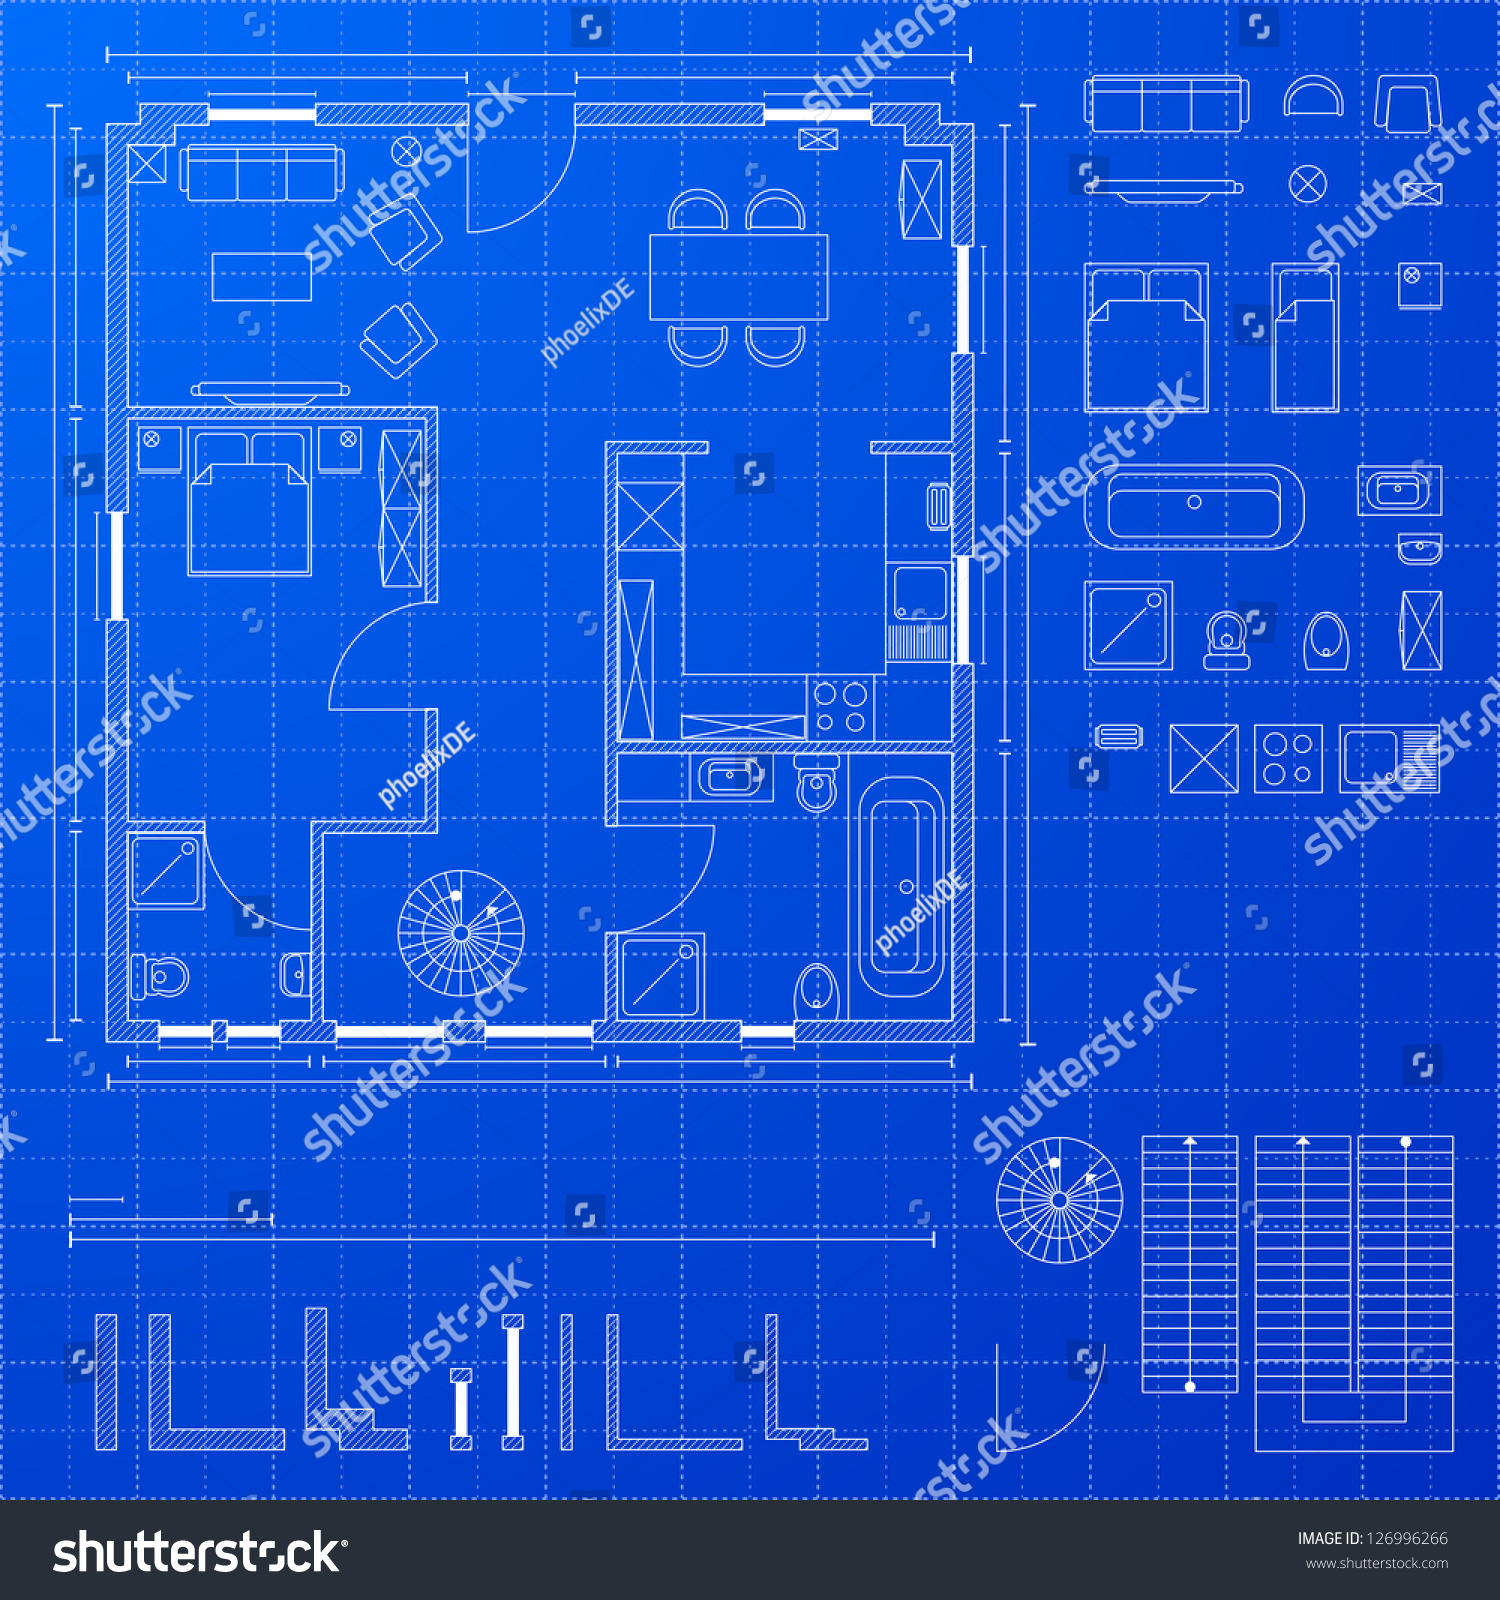 Detailed illustration blueprint floorplan various design vectores en detailed illustration of a blueprint floorplan with various design elements eps 10 malvernweather